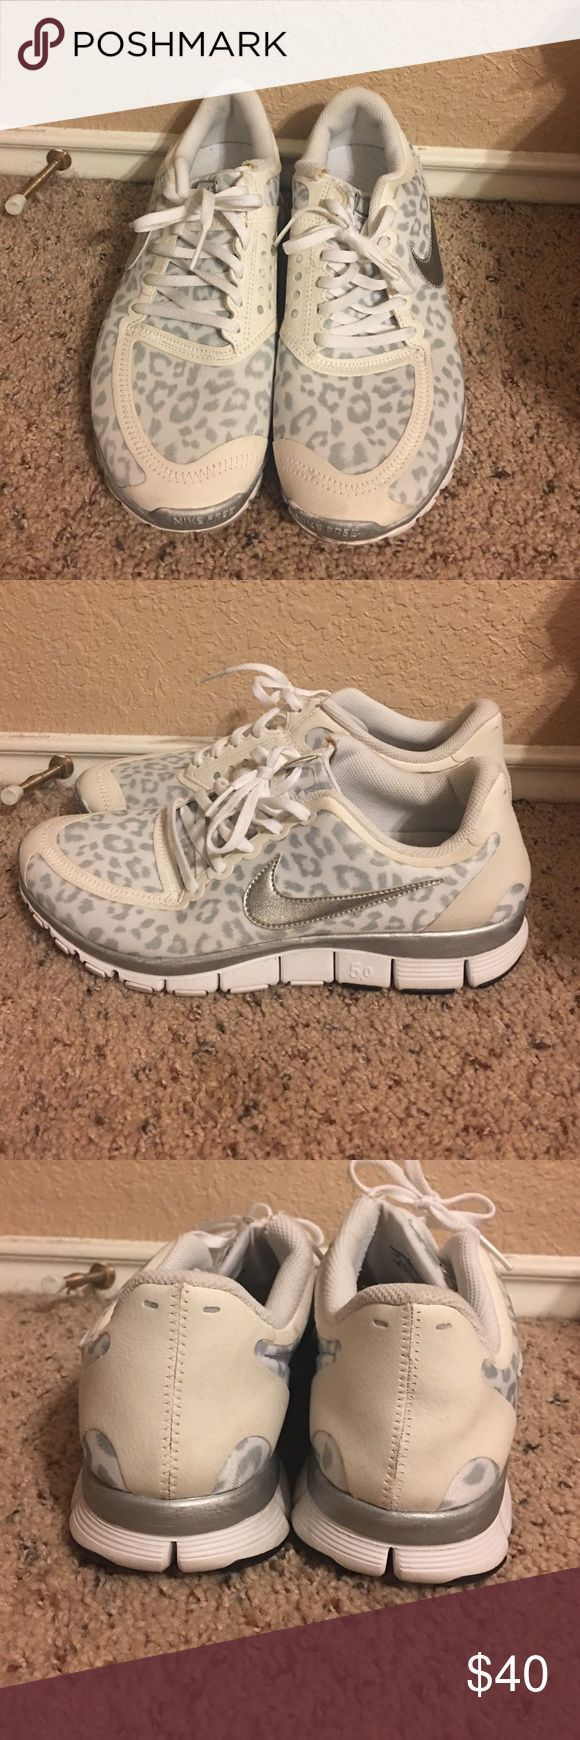 Snow Leopard Nikes Snow Leopard Nikes great condition I just don't ever use them Nike Shoes Athletic Shoes